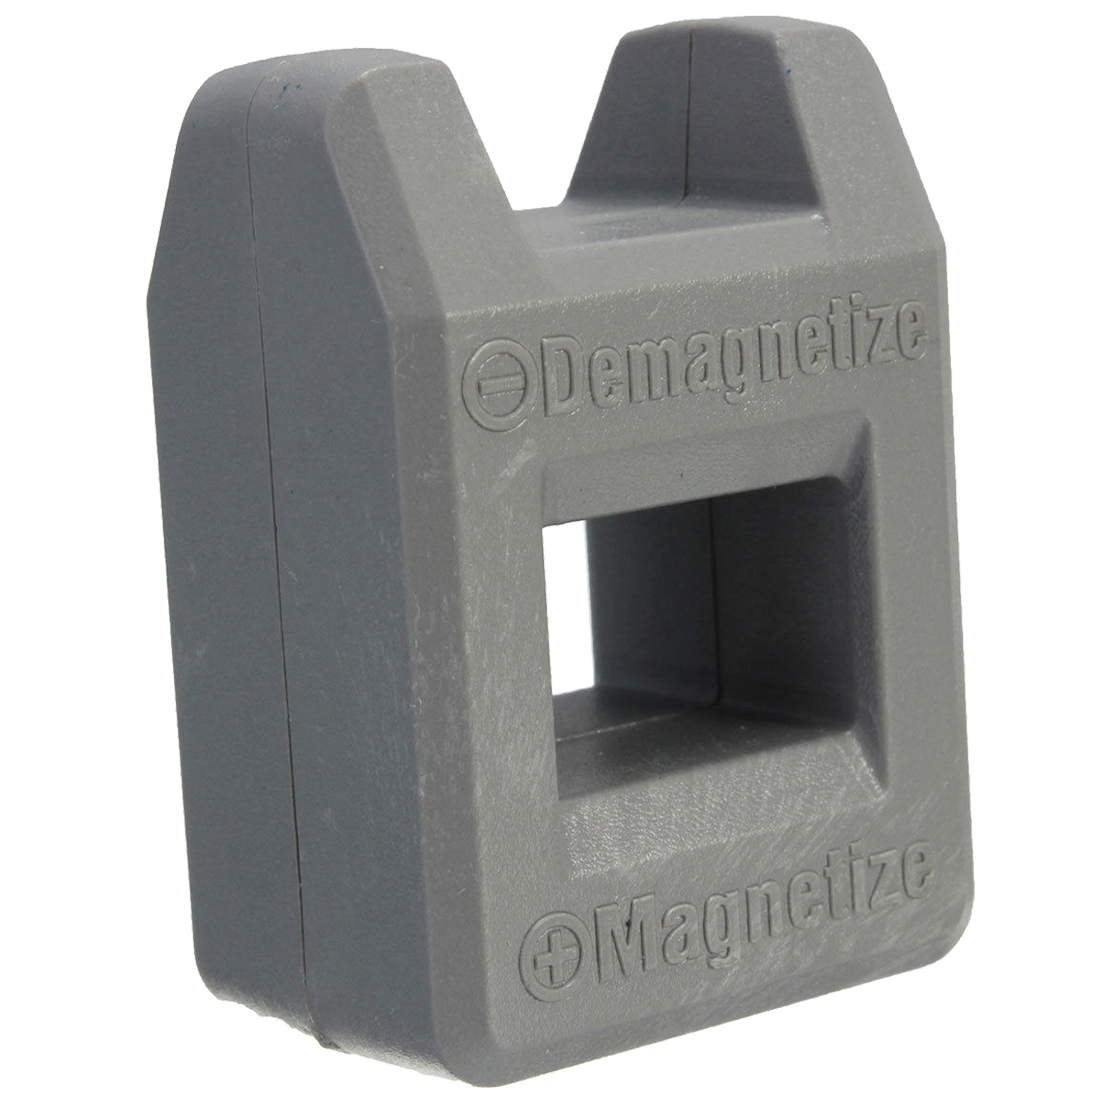 все цены на Screwdriver Magnetizer Degaussing Demagnetizer Magnetic Practical Pick Up Tool Color:Gray